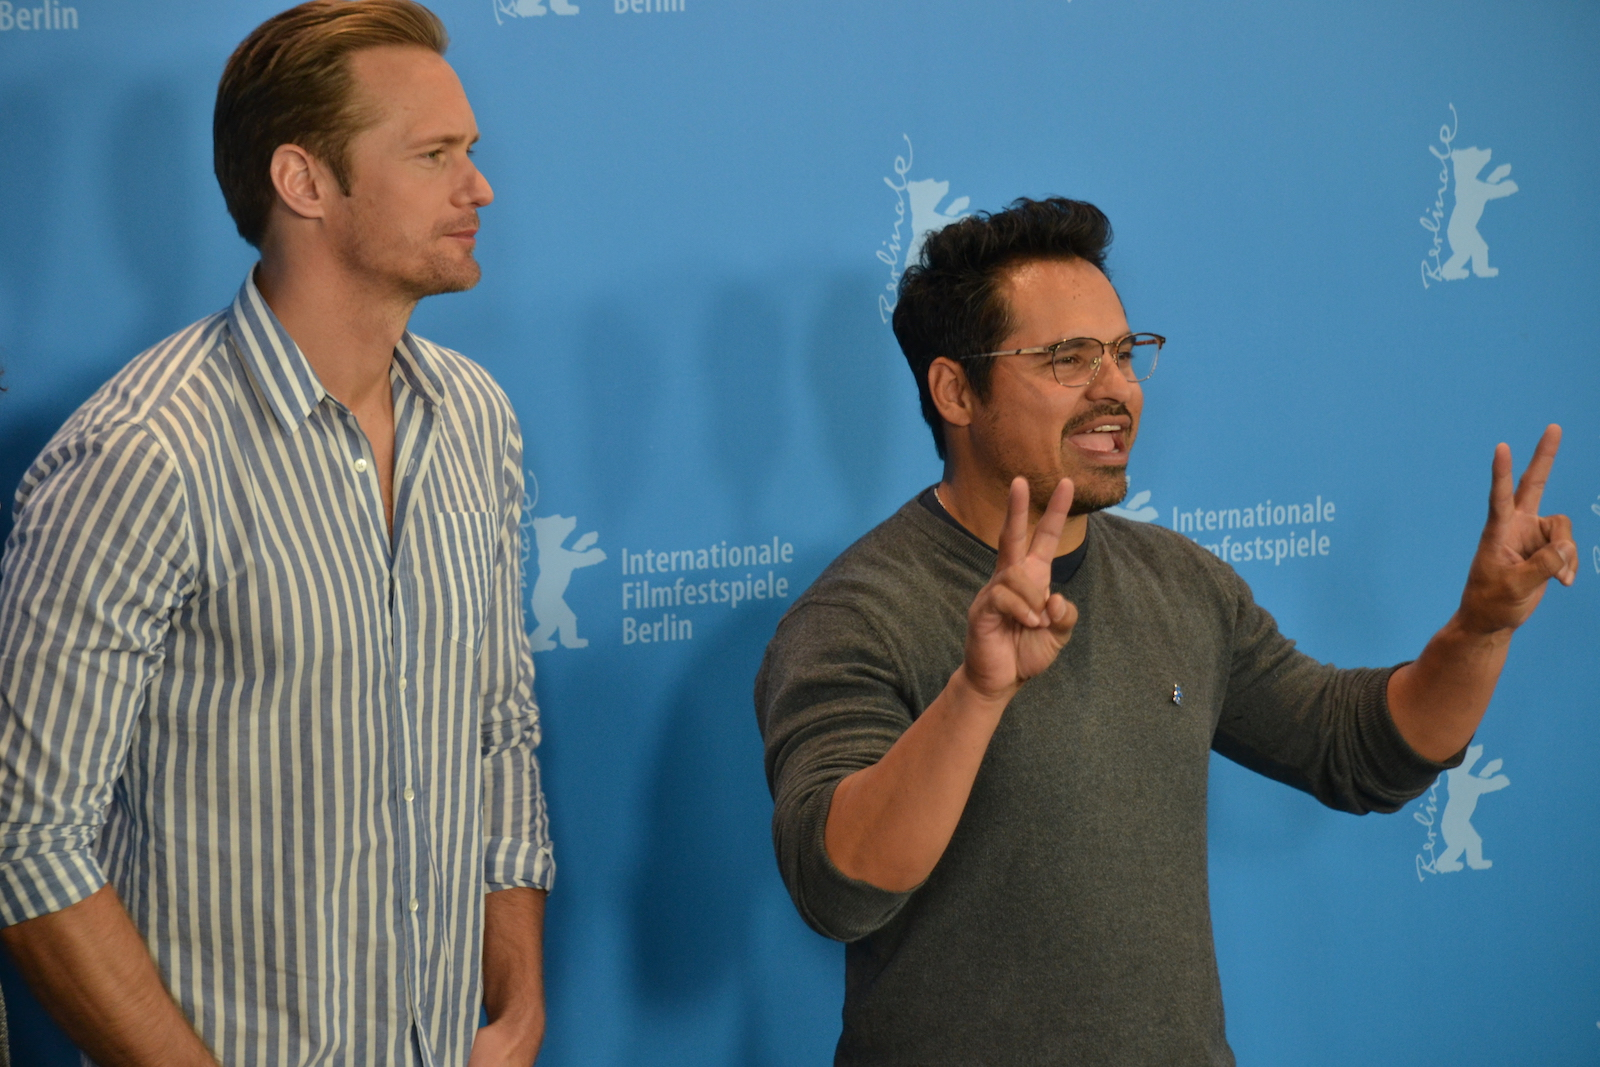 Berlino 2016: Michael Peña e Alexander Skarsgård in un immagine del photocall di War On Everyone